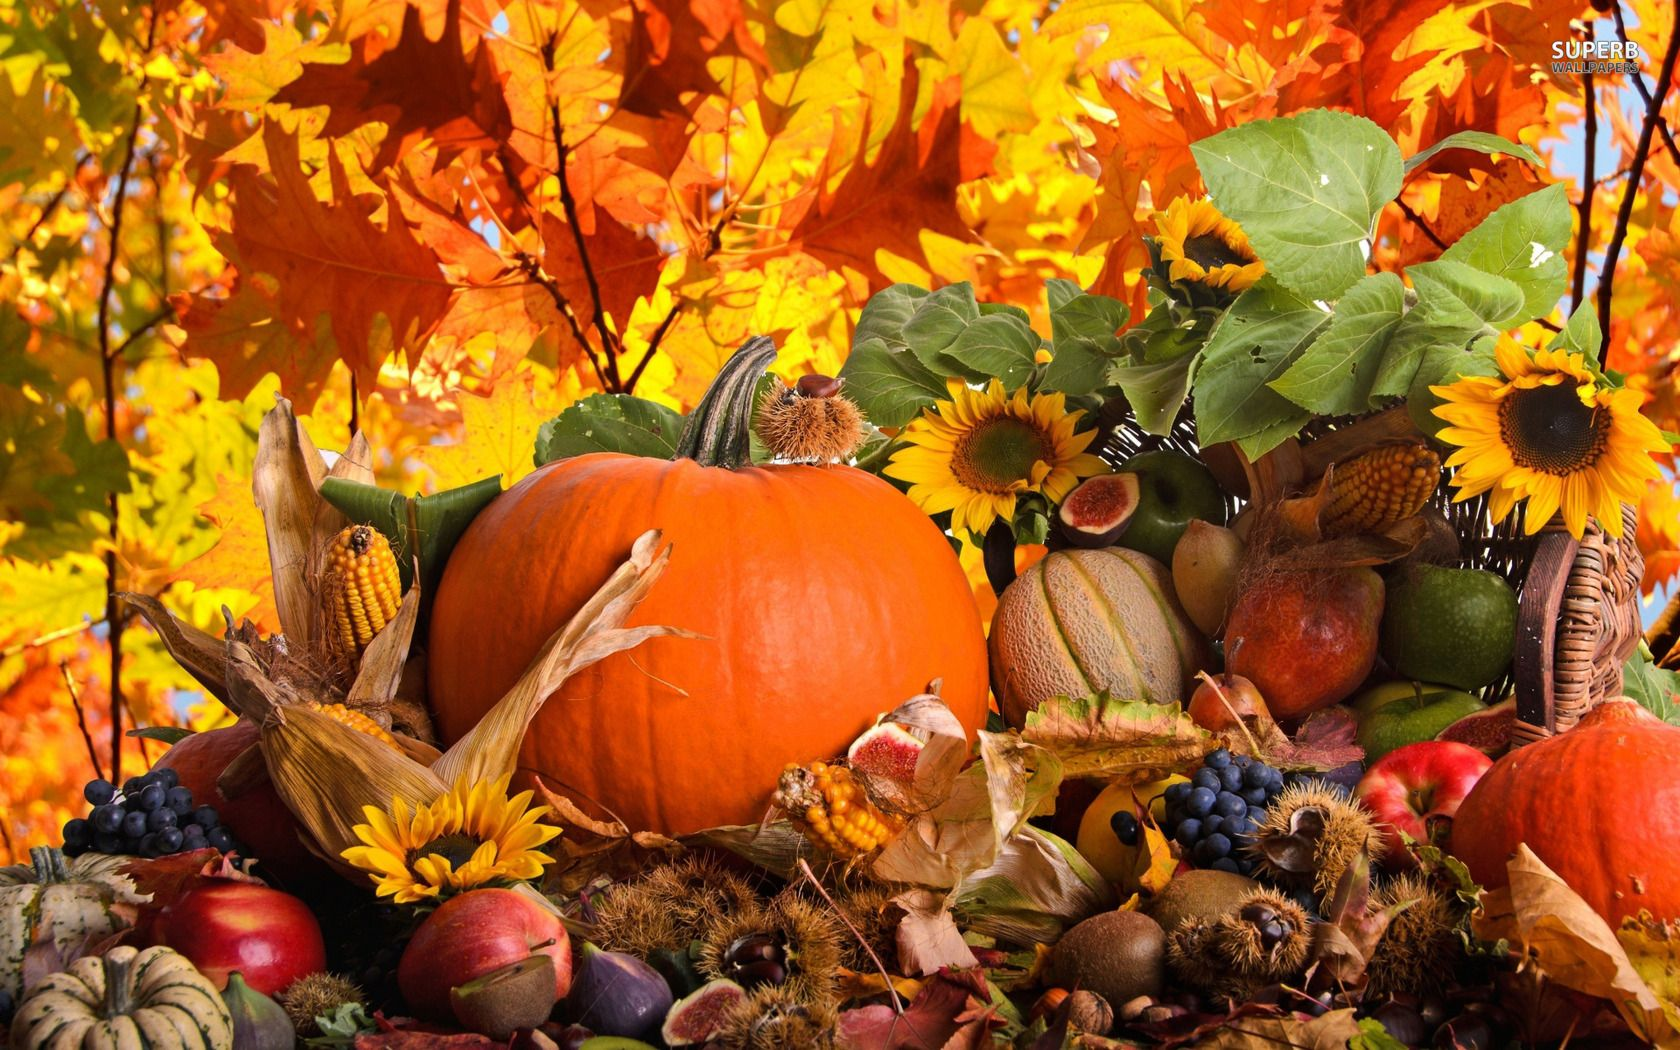 Download Fall Harvest Background For Iphone Pc Desktop Android Or Mac Iphone Nature Pumpkin Wallpaper Thanksgiving Wallpaper Free Thanksgiving Wallpaper